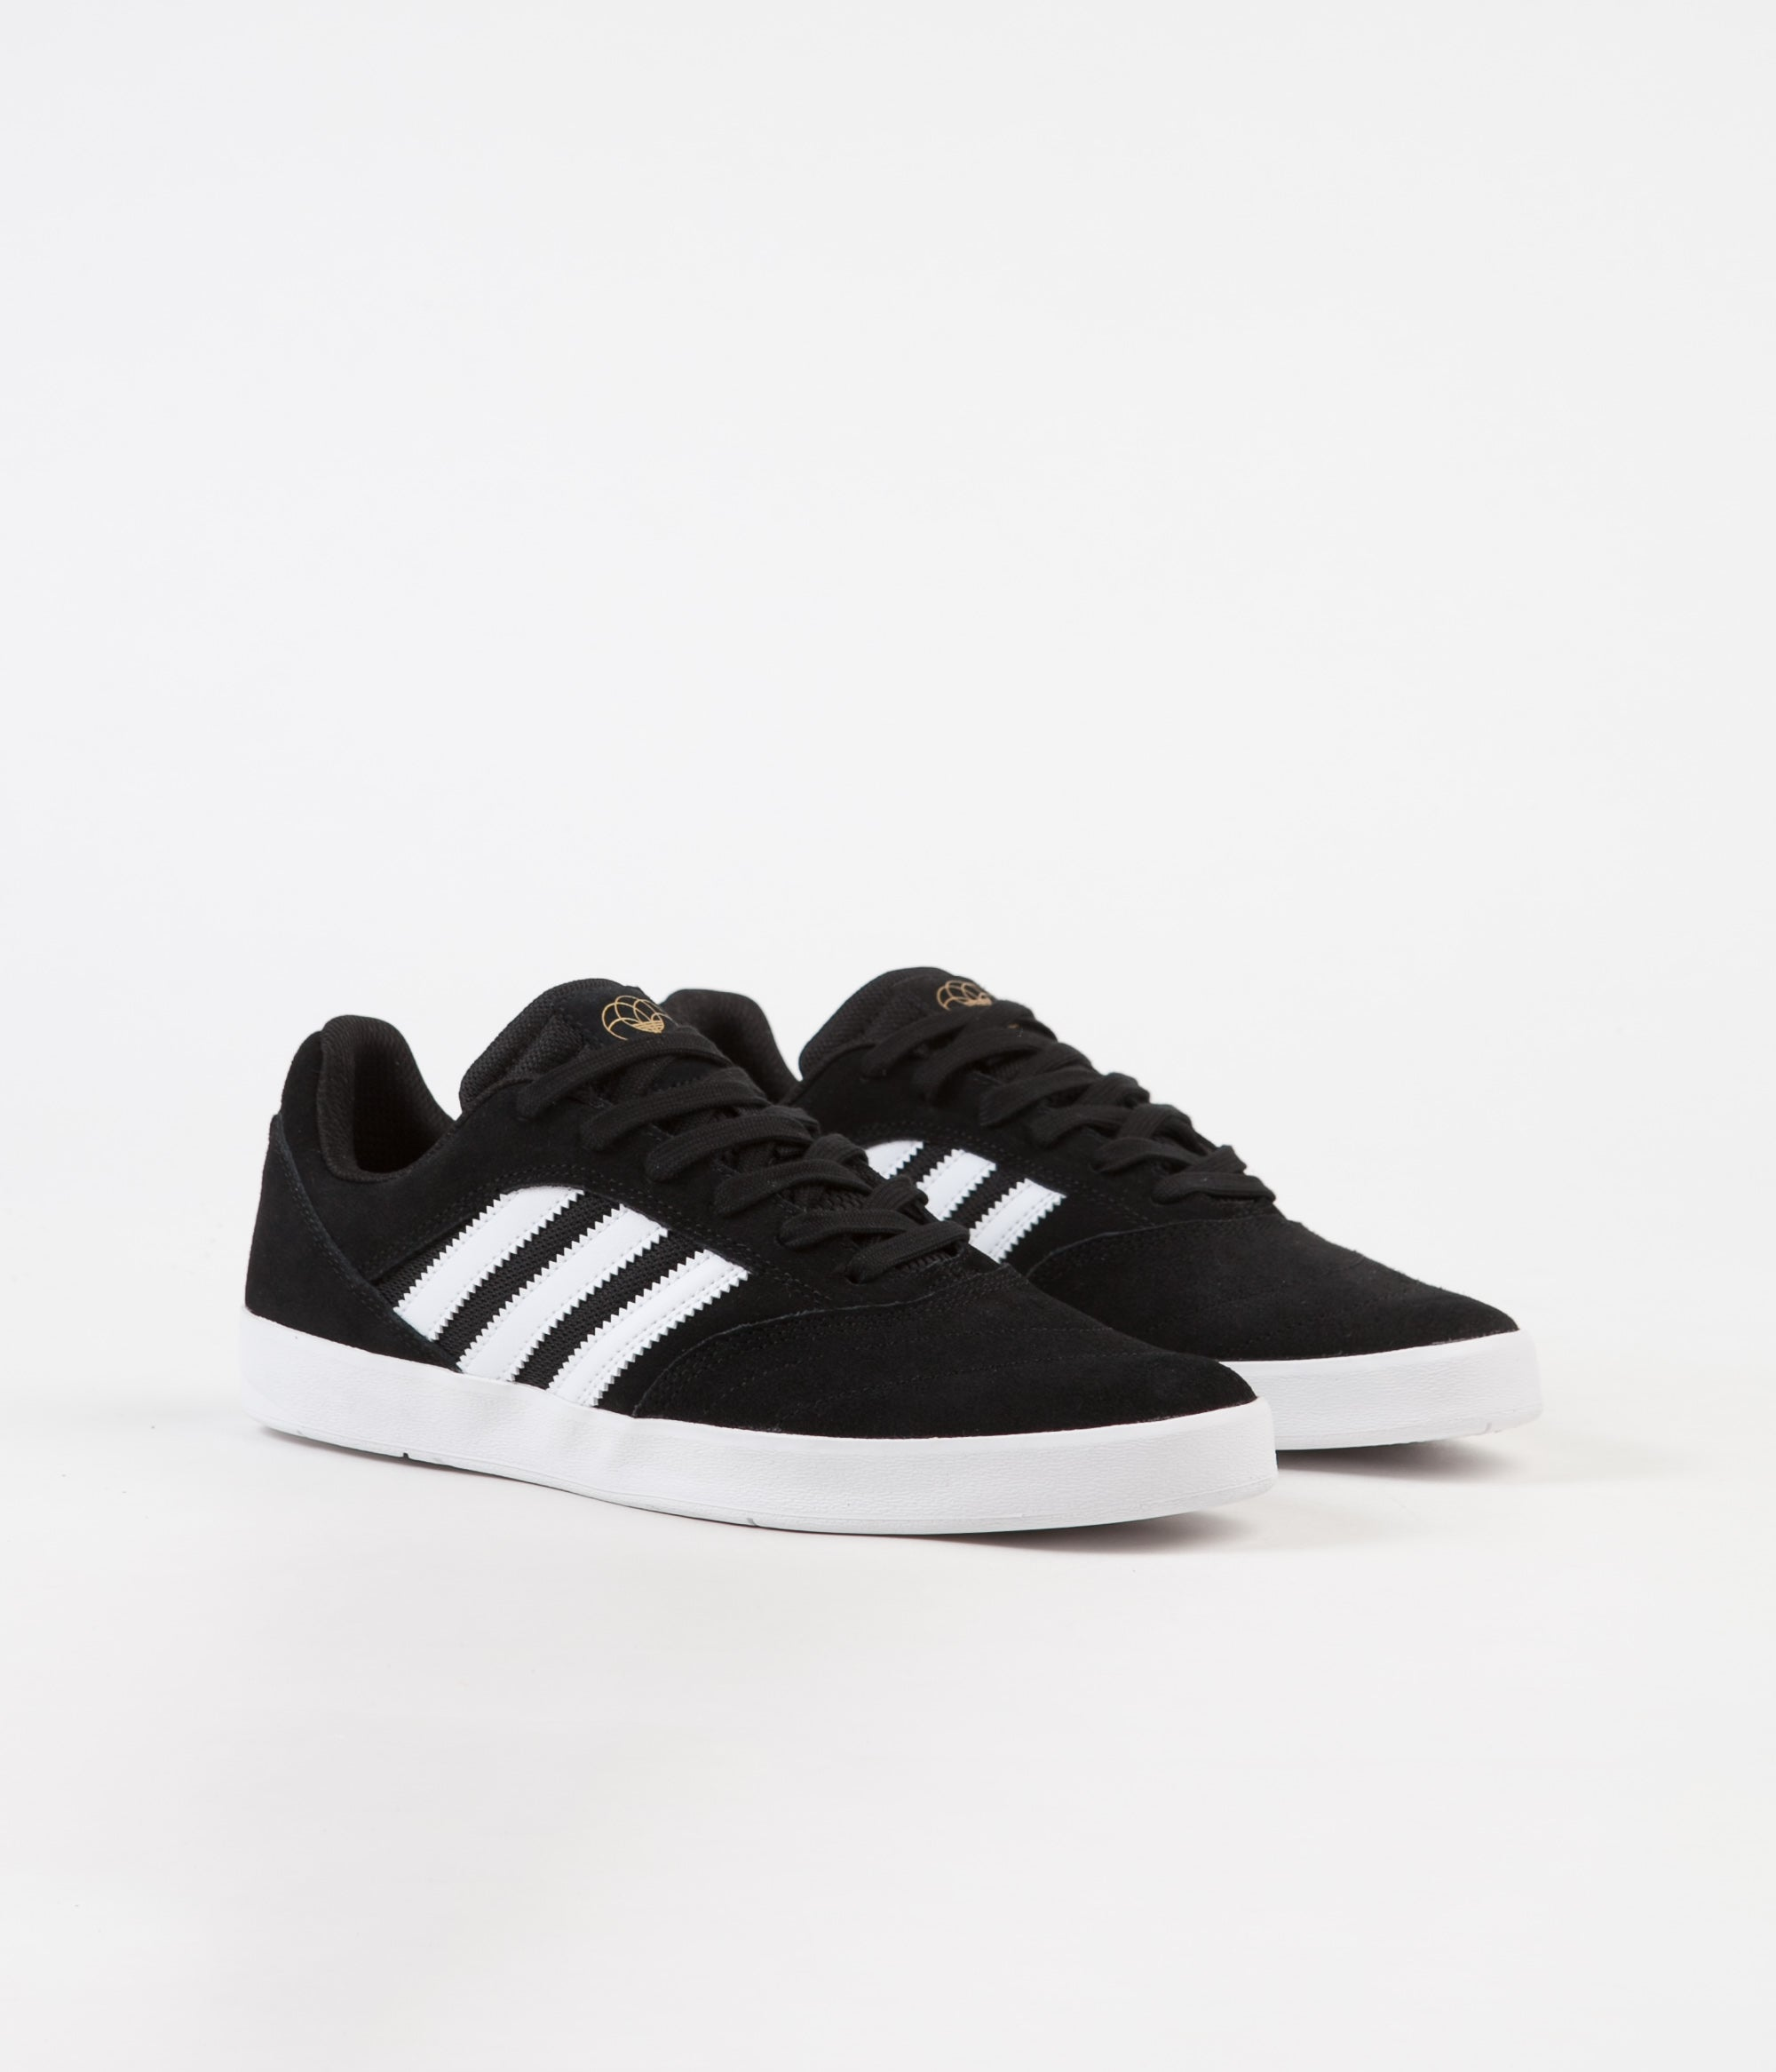 Adidas Suciu ADV II Shoes Core Black FTW White Gold